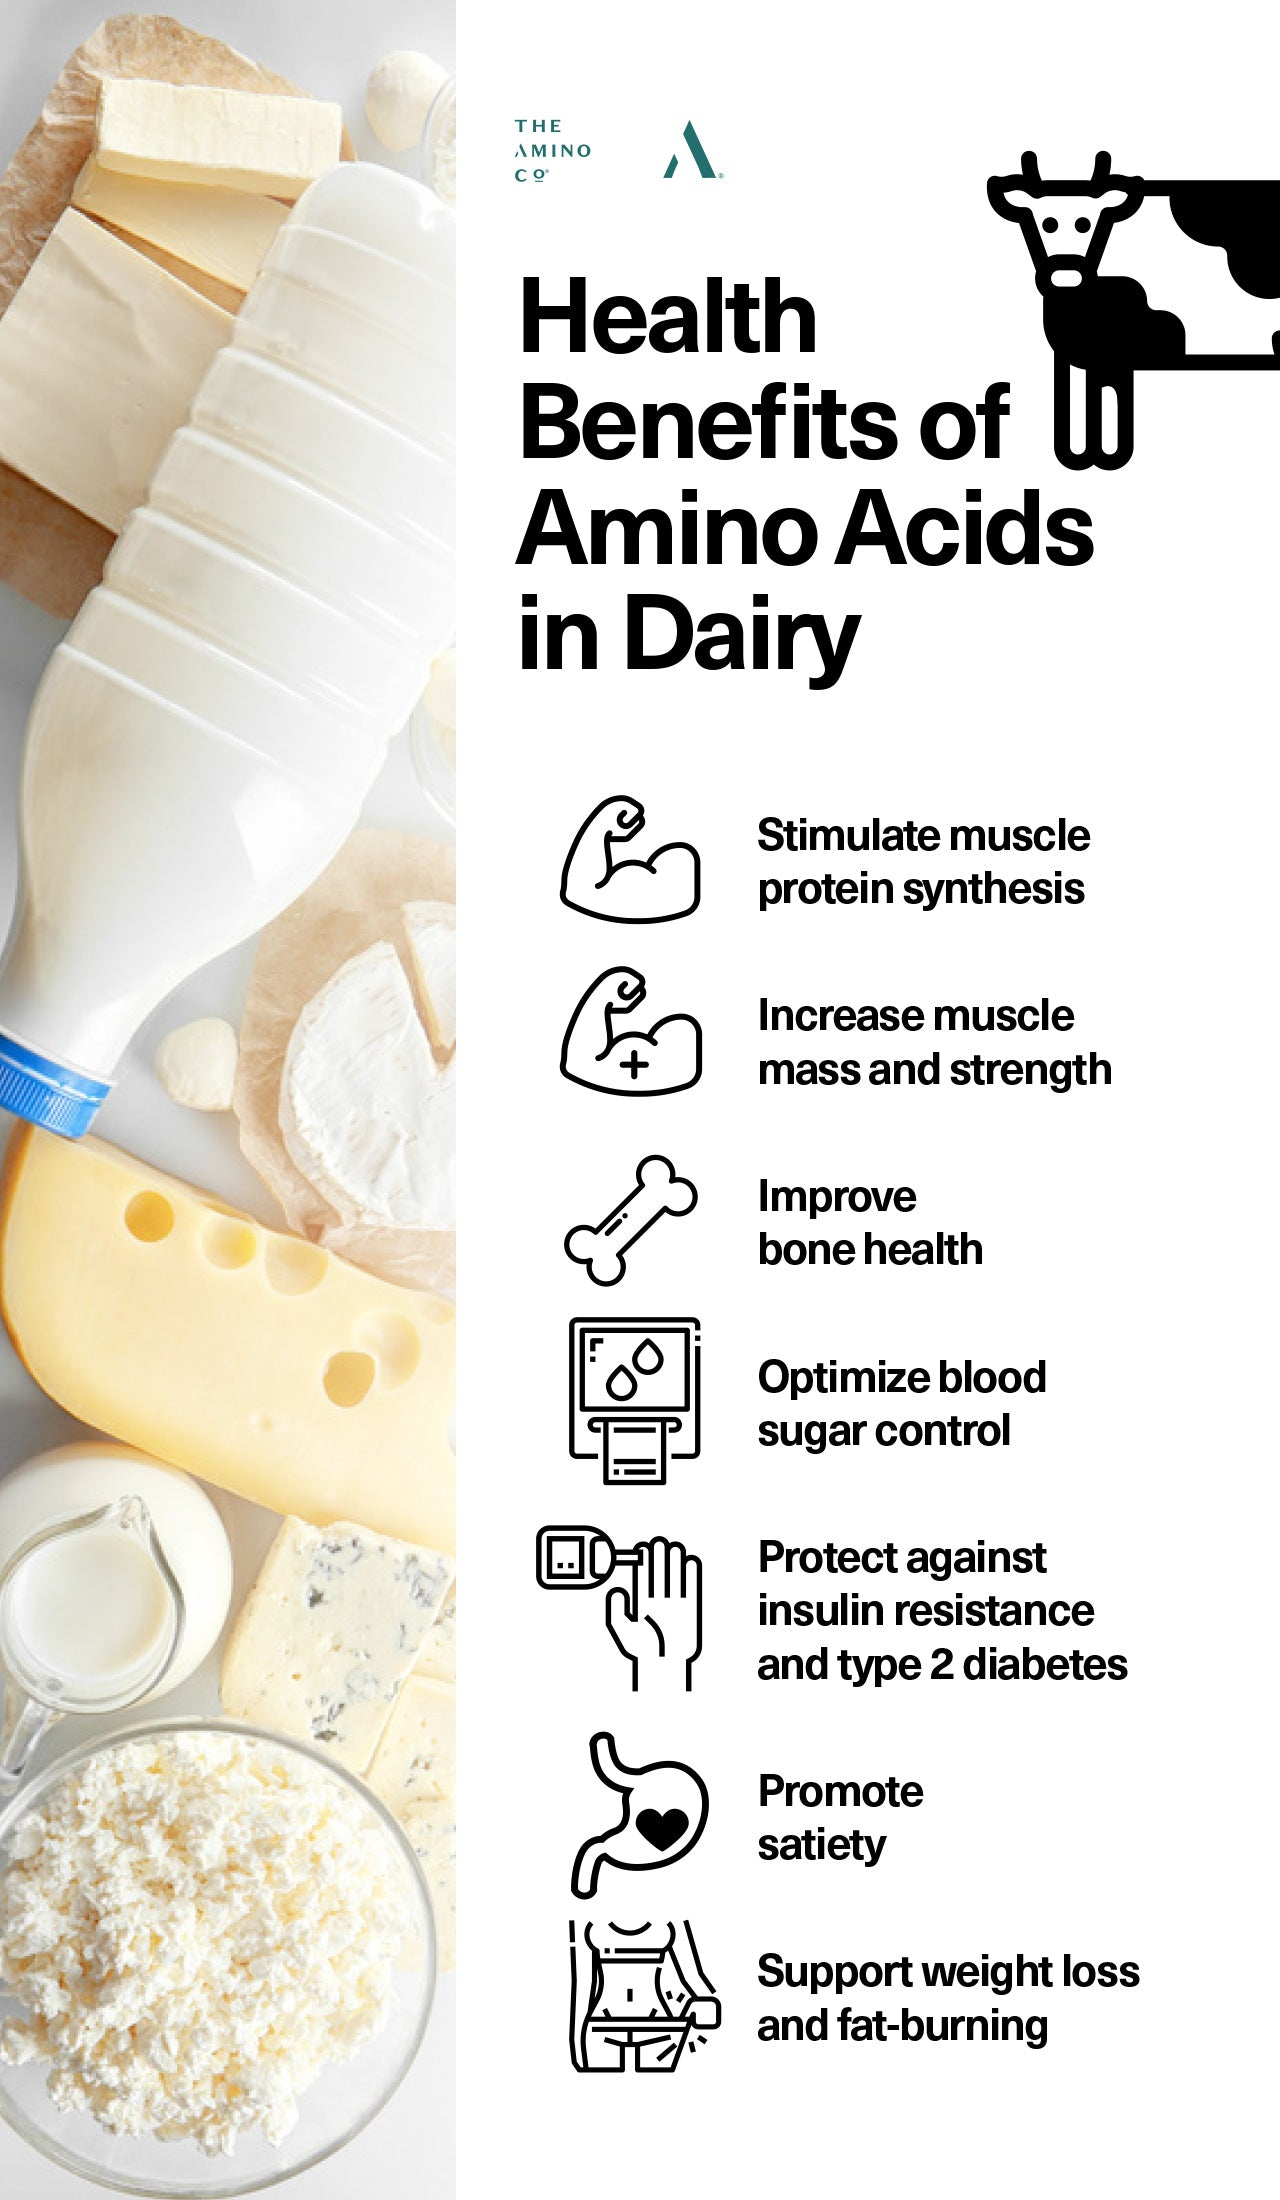 Health Benefits of Amino Acids in Dairy